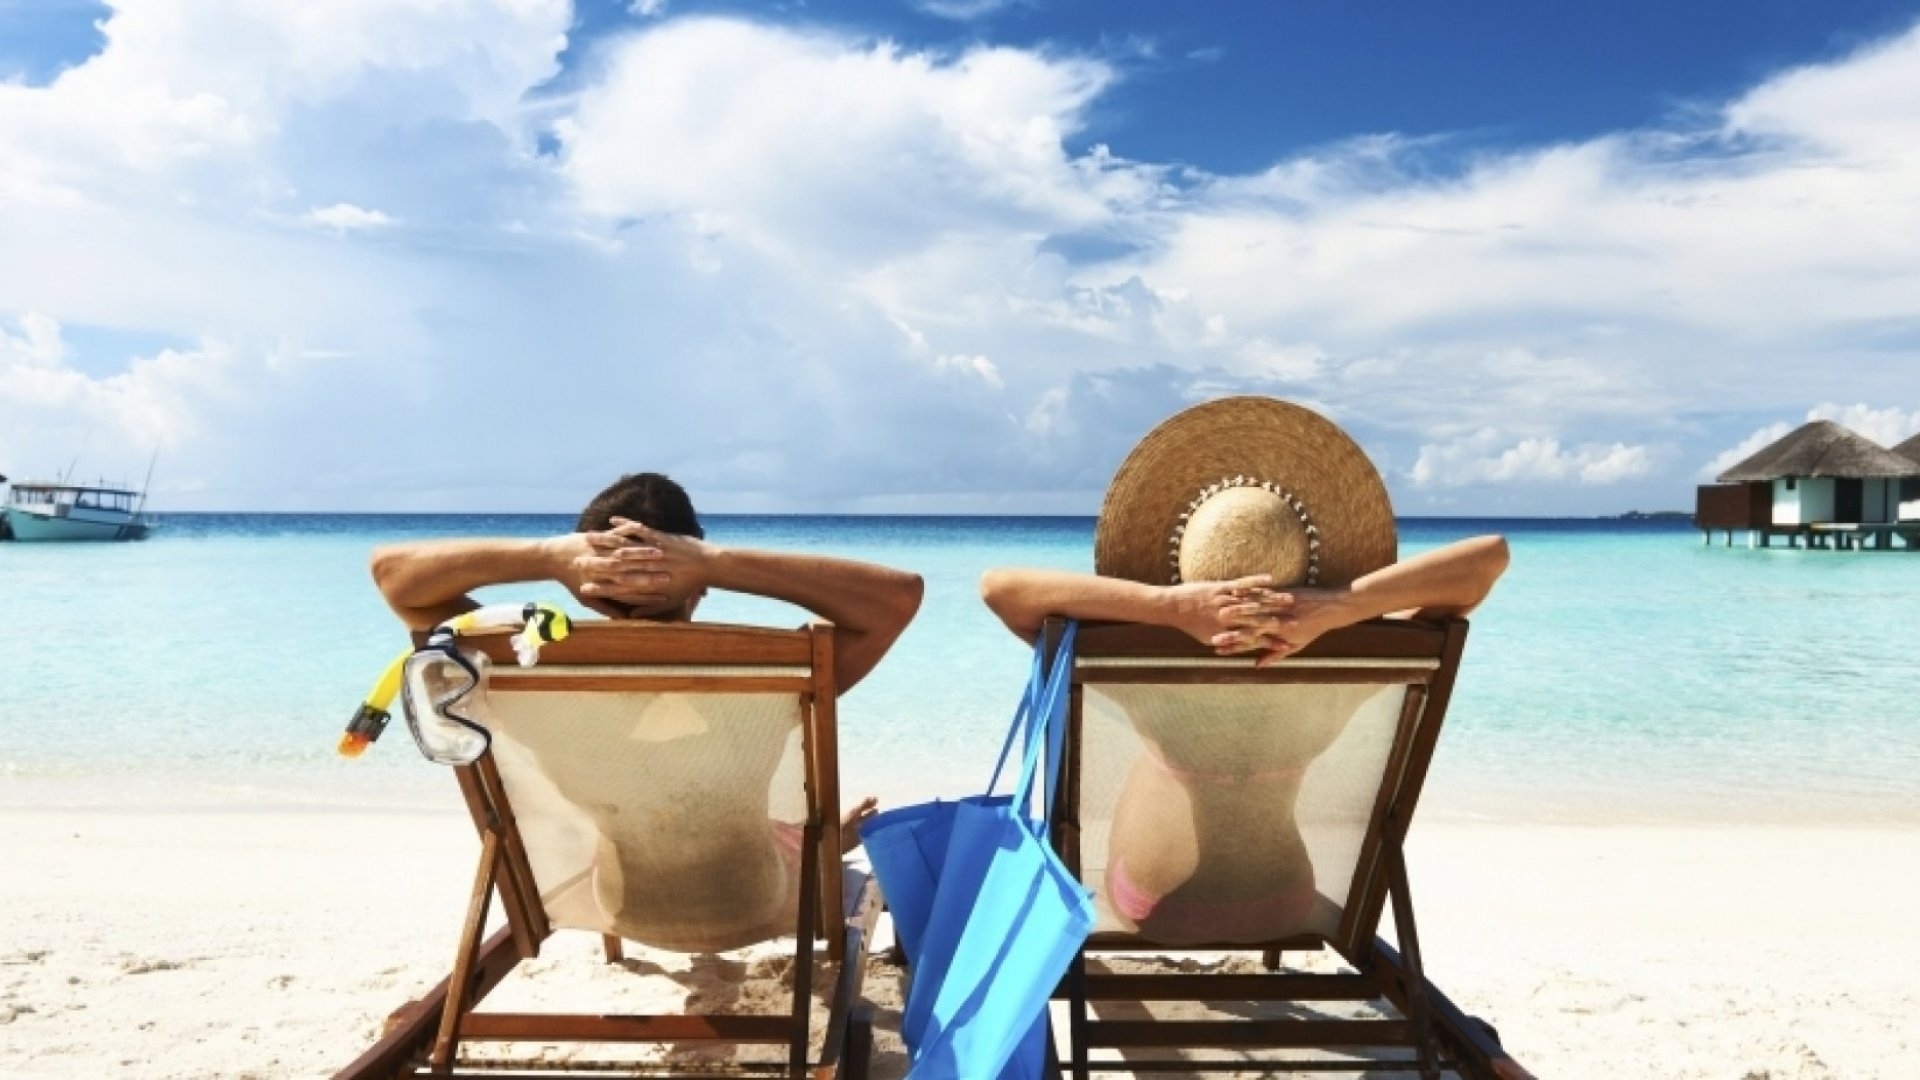 4 Great Ways to Prepare for Your Vacation (and Be Happy Upon Return)